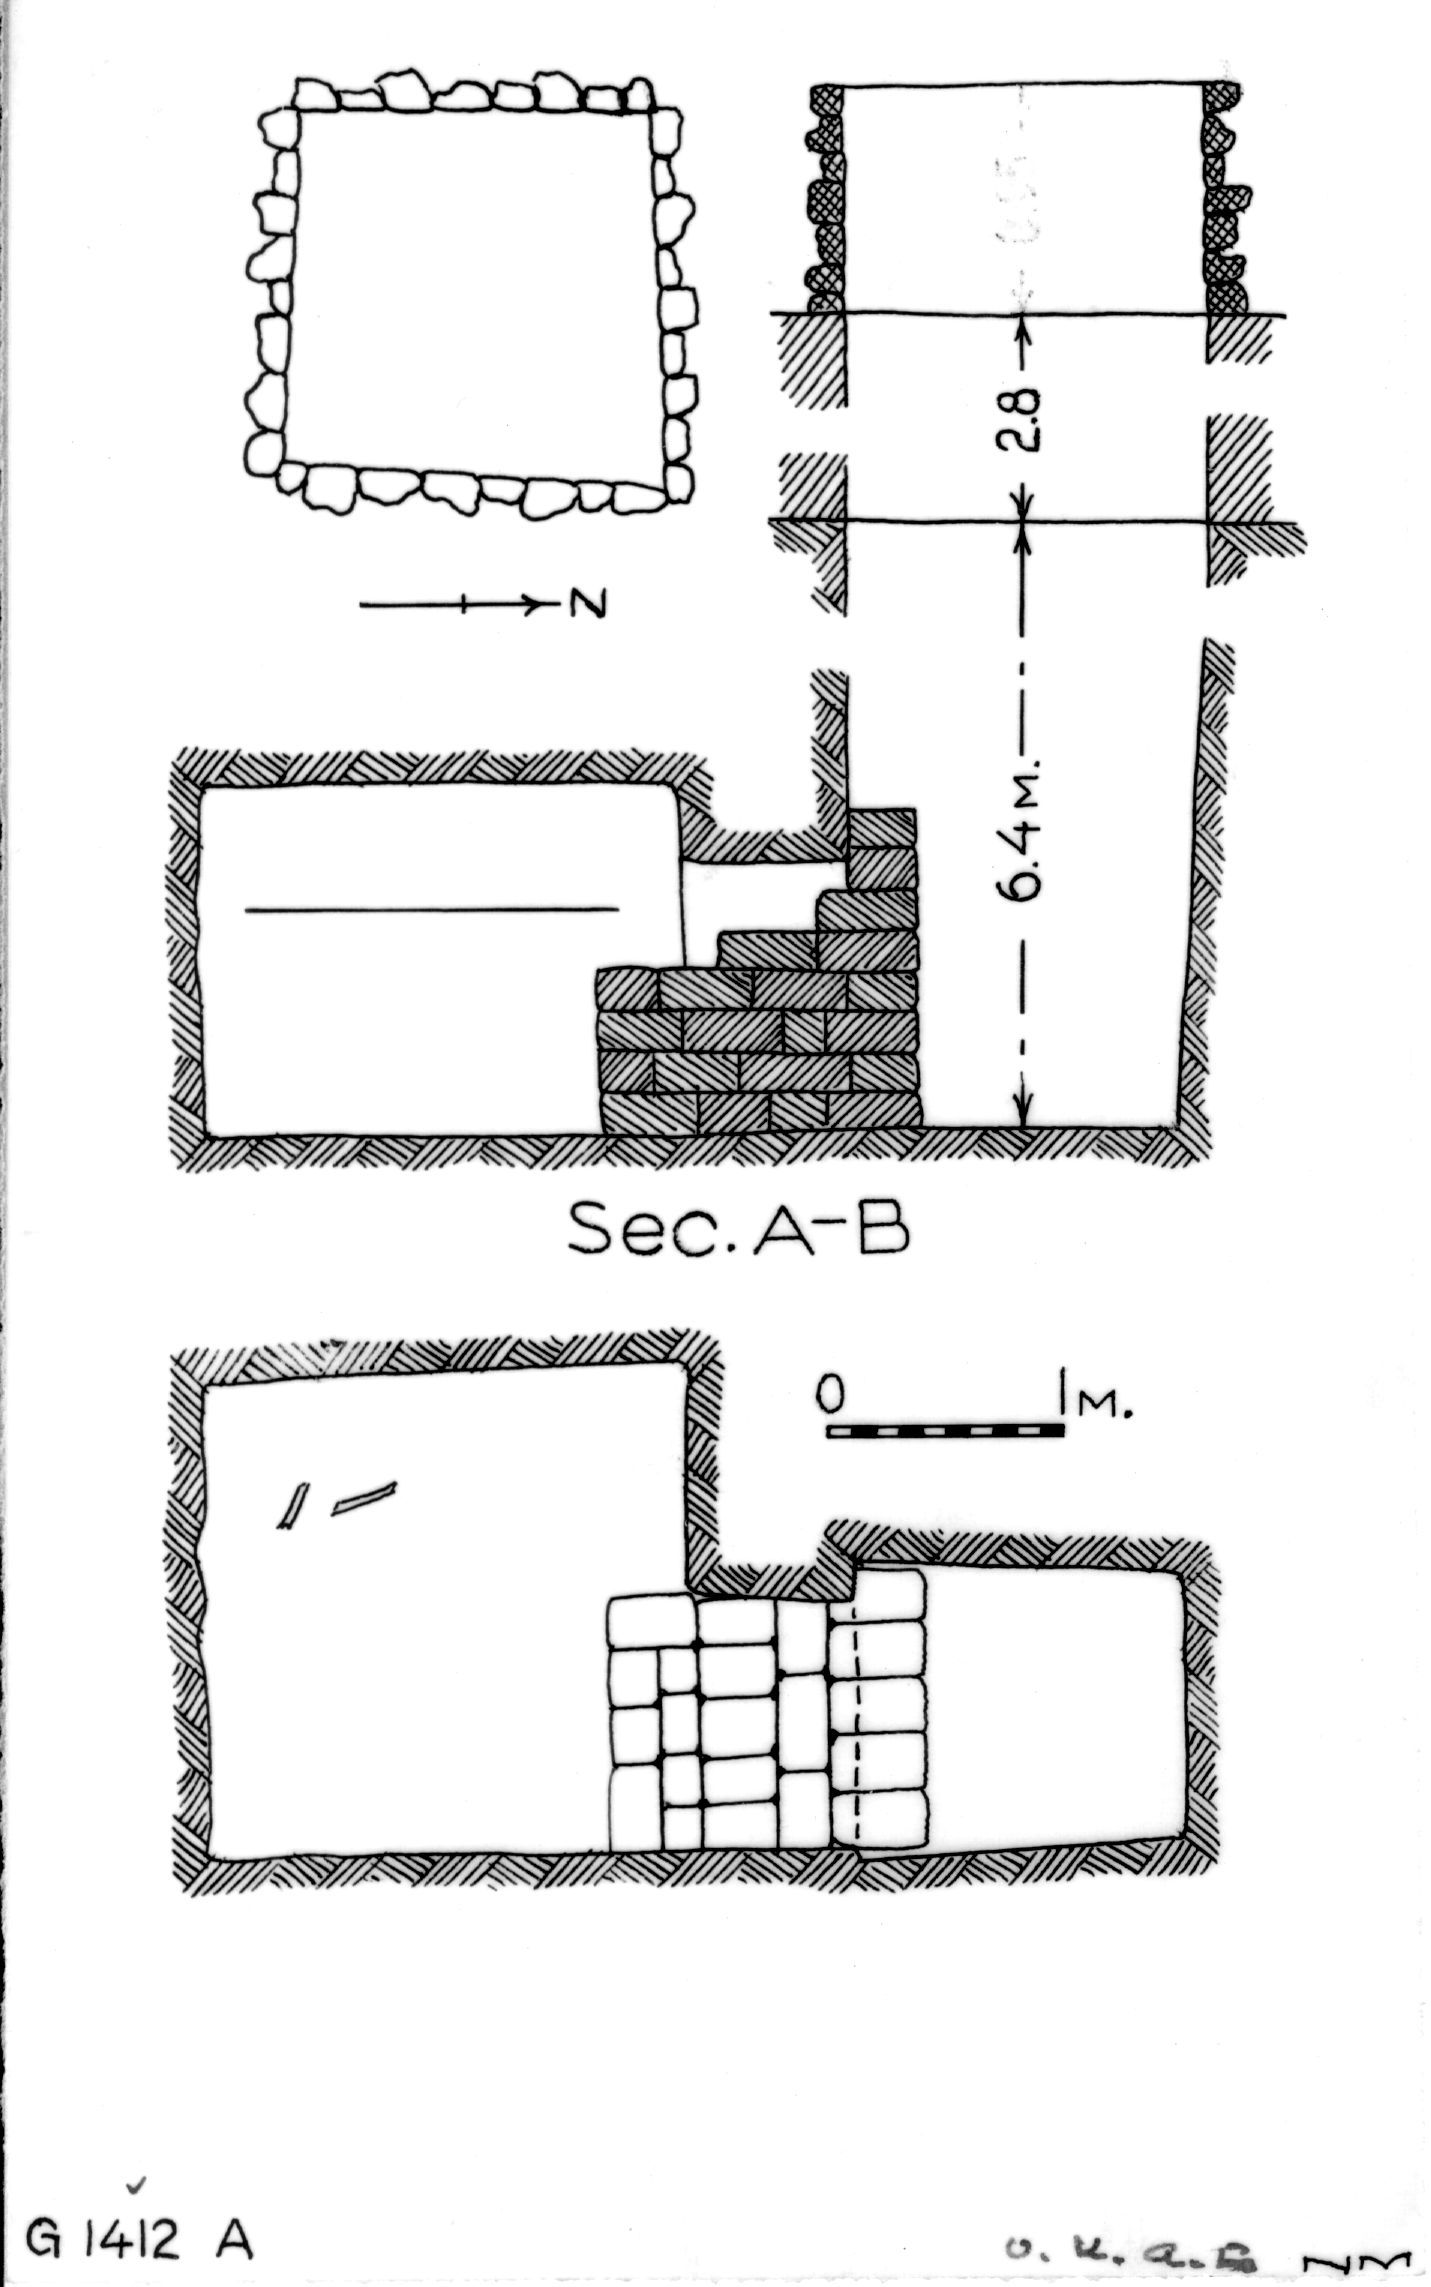 Maps and plans: G 1412, Shaft A